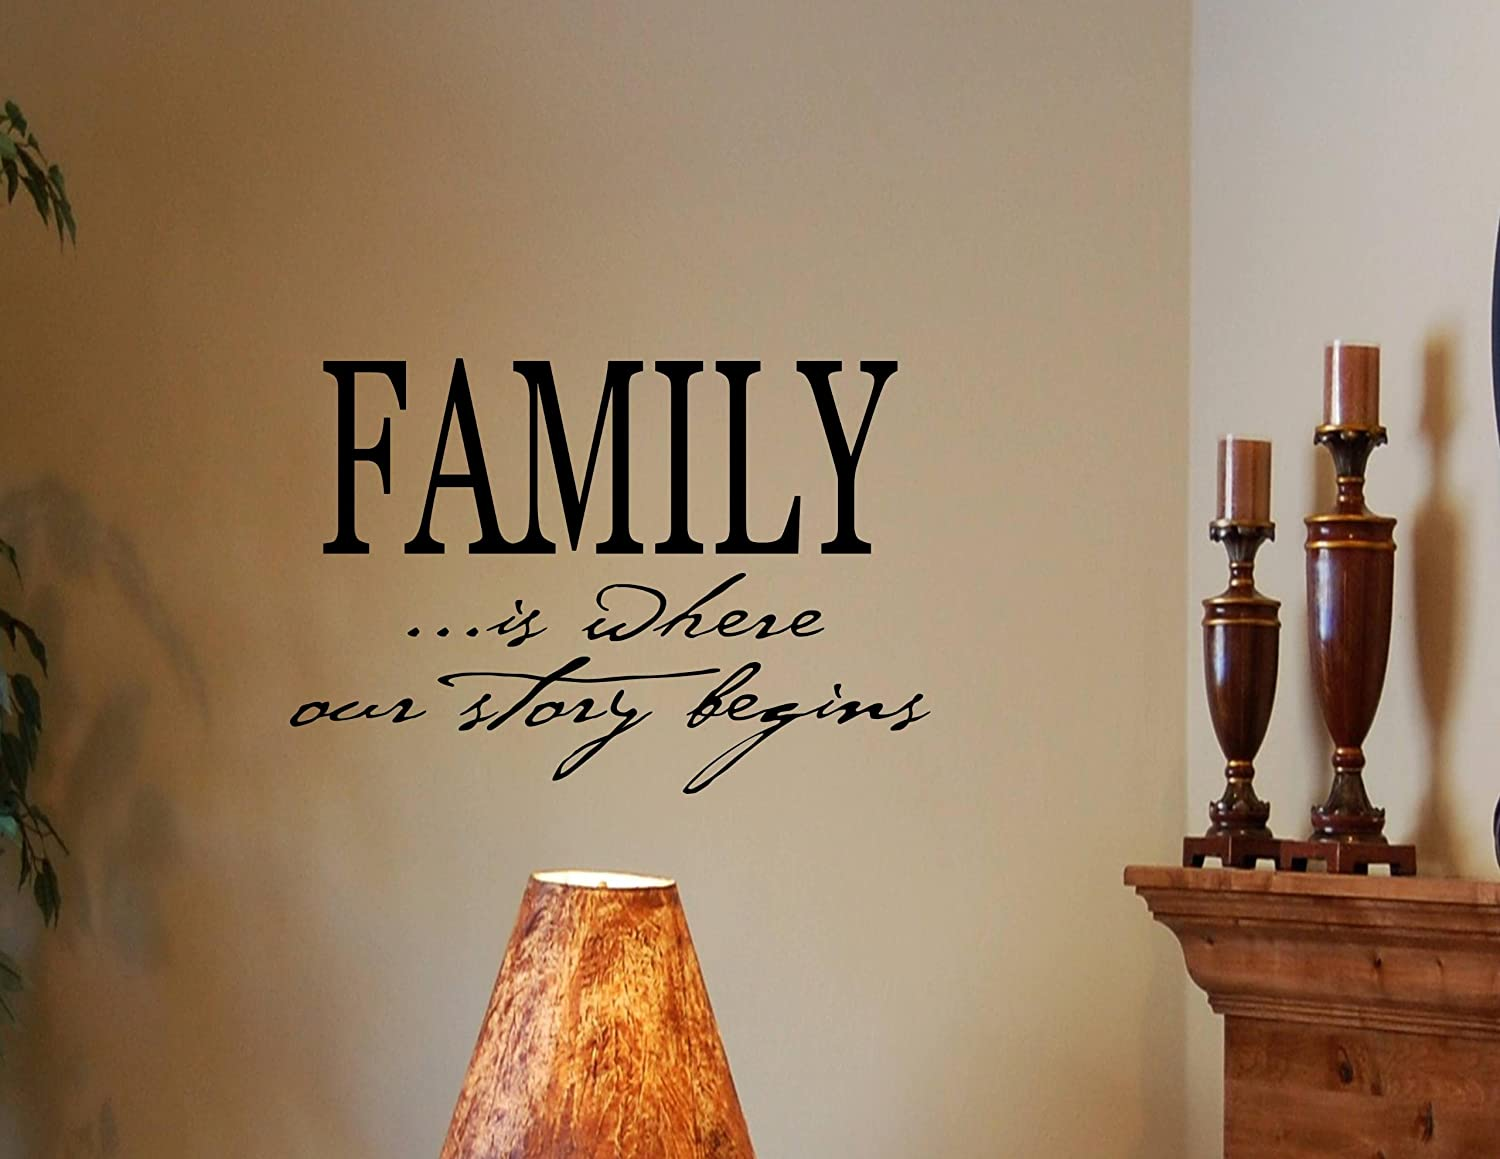 Amazon.com FAMILY IS WHERE OUR STORY BEGINS Vinyl Wall Decals Quotes Sayings Words Art D... Home u0026 Kitchen & Amazon.com: FAMILY IS WHERE OUR STORY BEGINS Vinyl Wall Decals ...